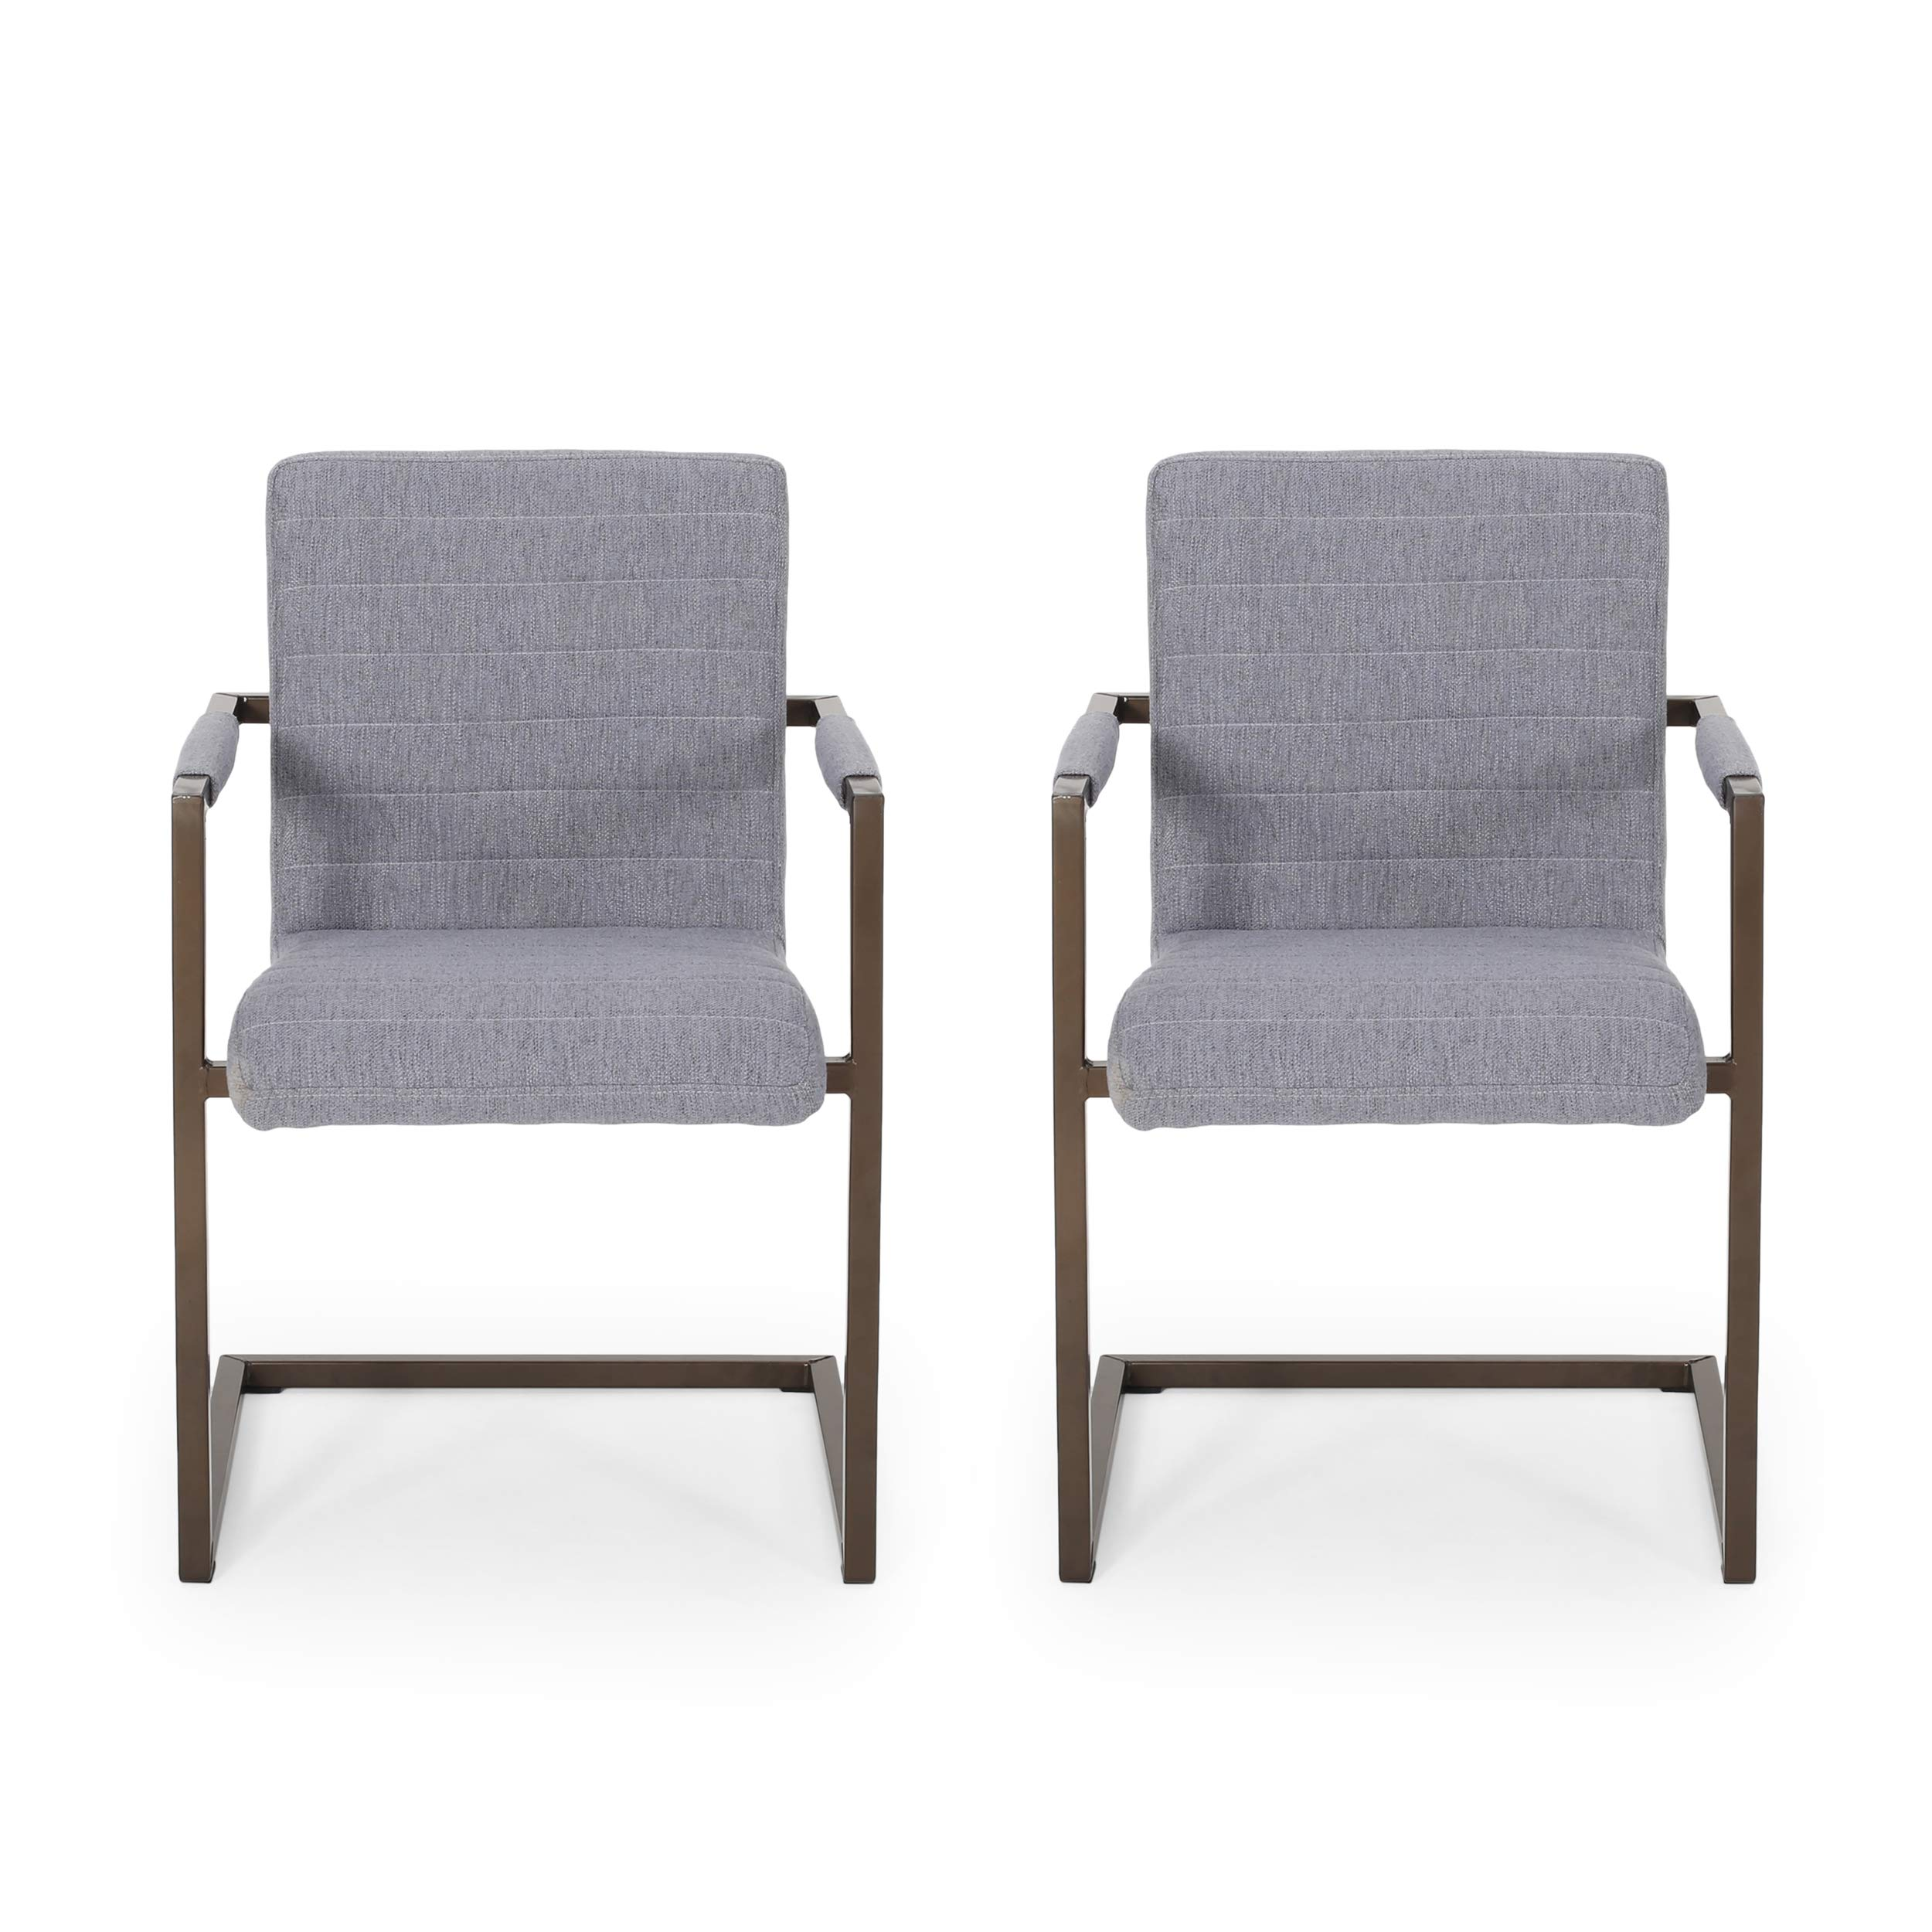 Lilith Modern Fabric Arm Chair (Set of 2), Charcoal and Bronze by Great Deal Furniture